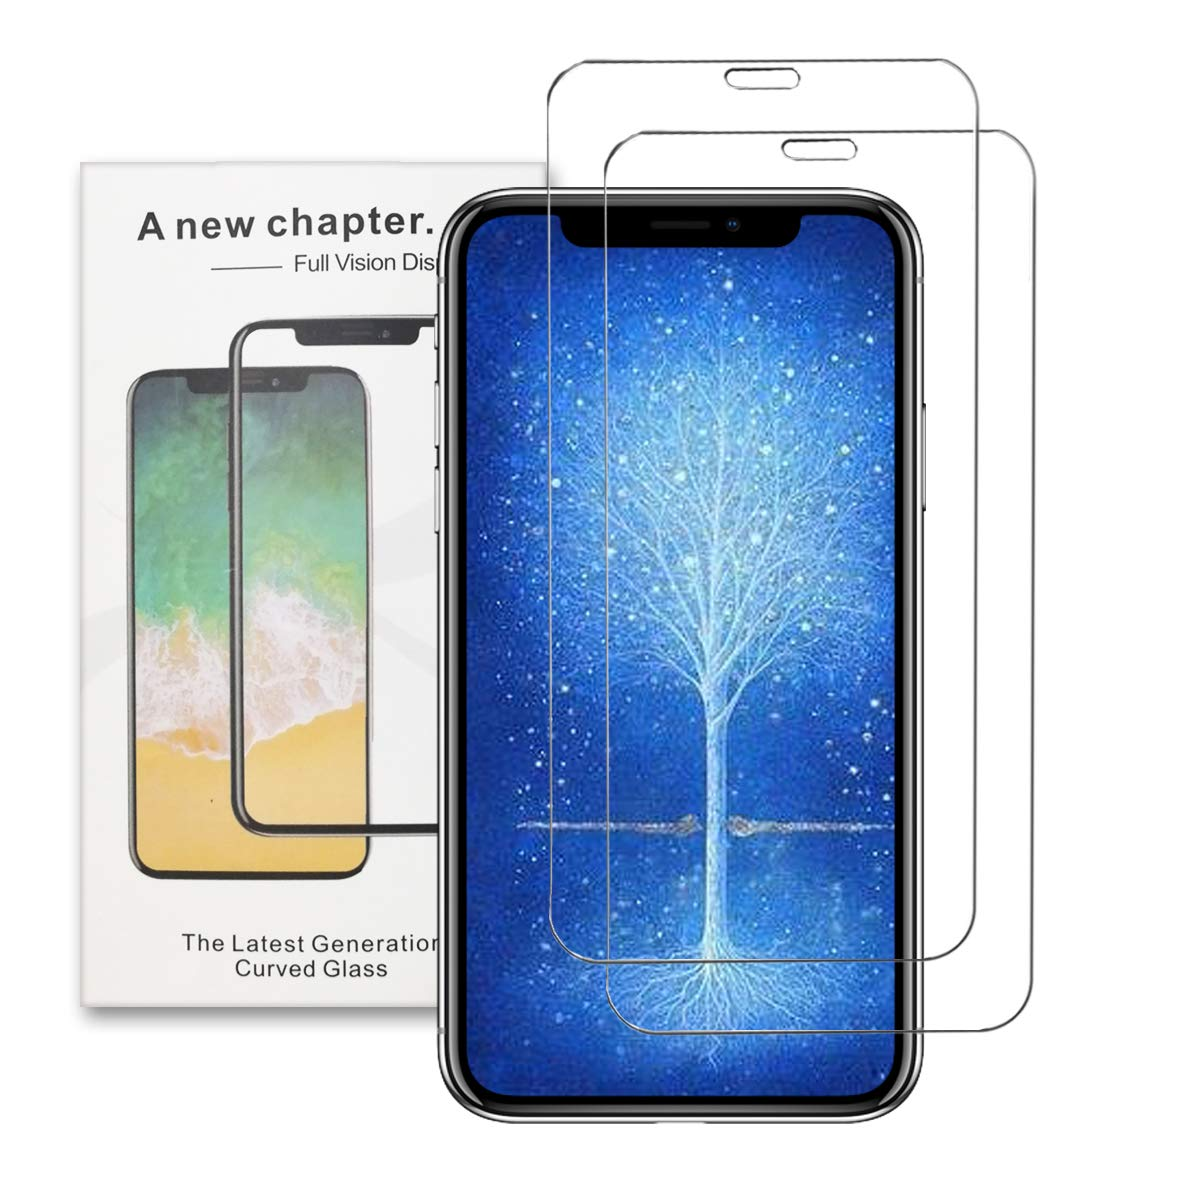 iPhone Xs/X Screen Protector Glass, Eastoan iPhone Xs/X Tempered Glass Screen Protector with Easy Installation Tray for Apple iPhone Xs, iPhone 10S (2-Pack) (iPhone X/XS)